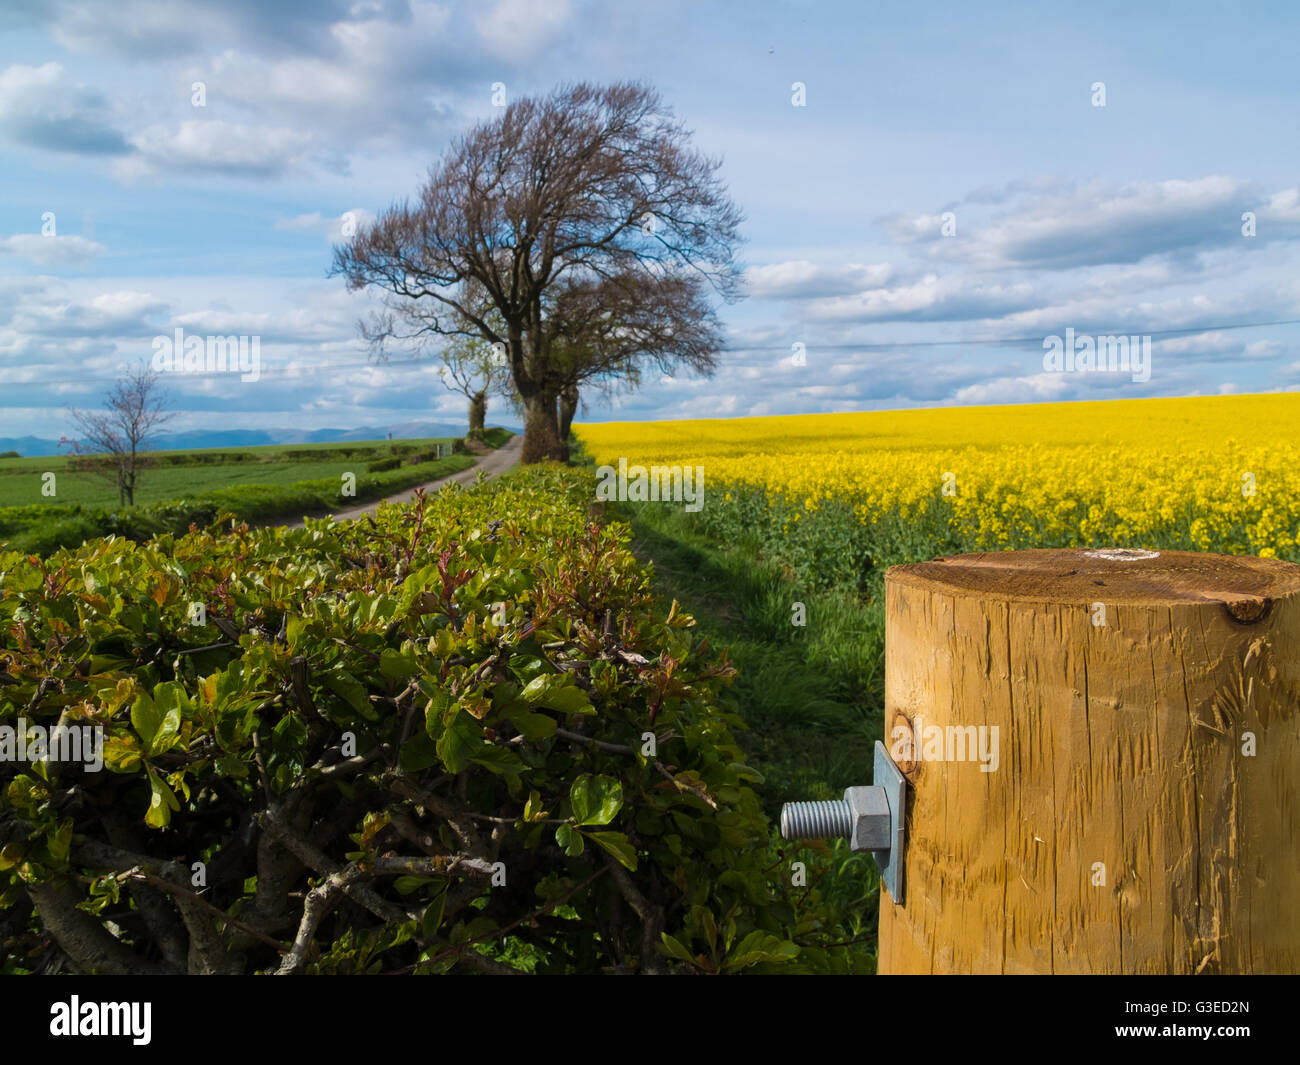 rapeseed field and wooden fence post - Stock Image